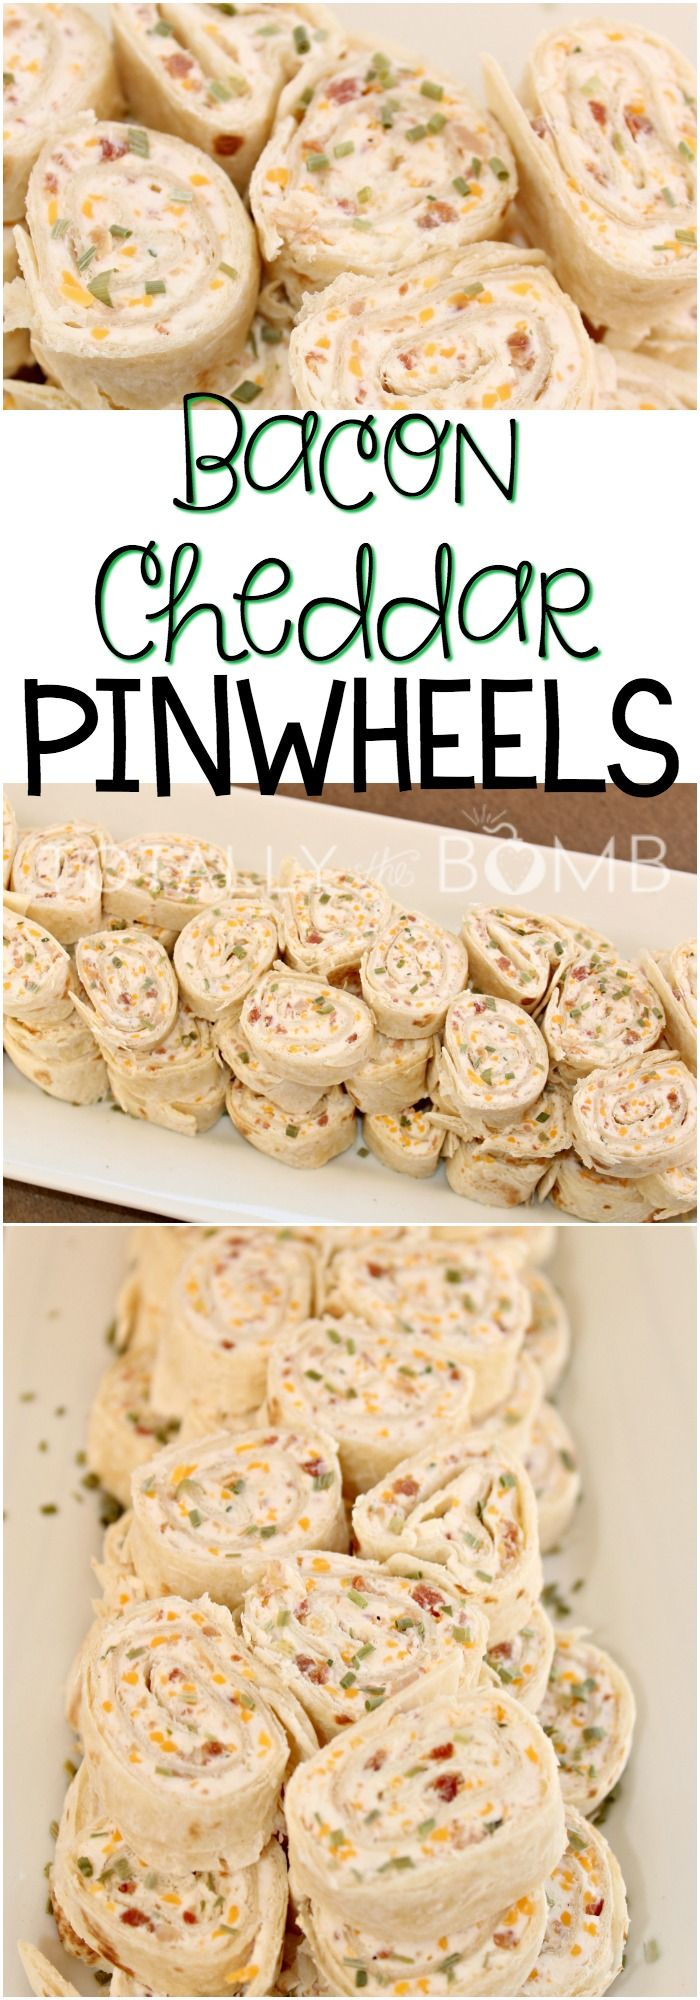 These Bacon Cheddar Pinwheels will be the best bacon filled appetizer you've ever made.